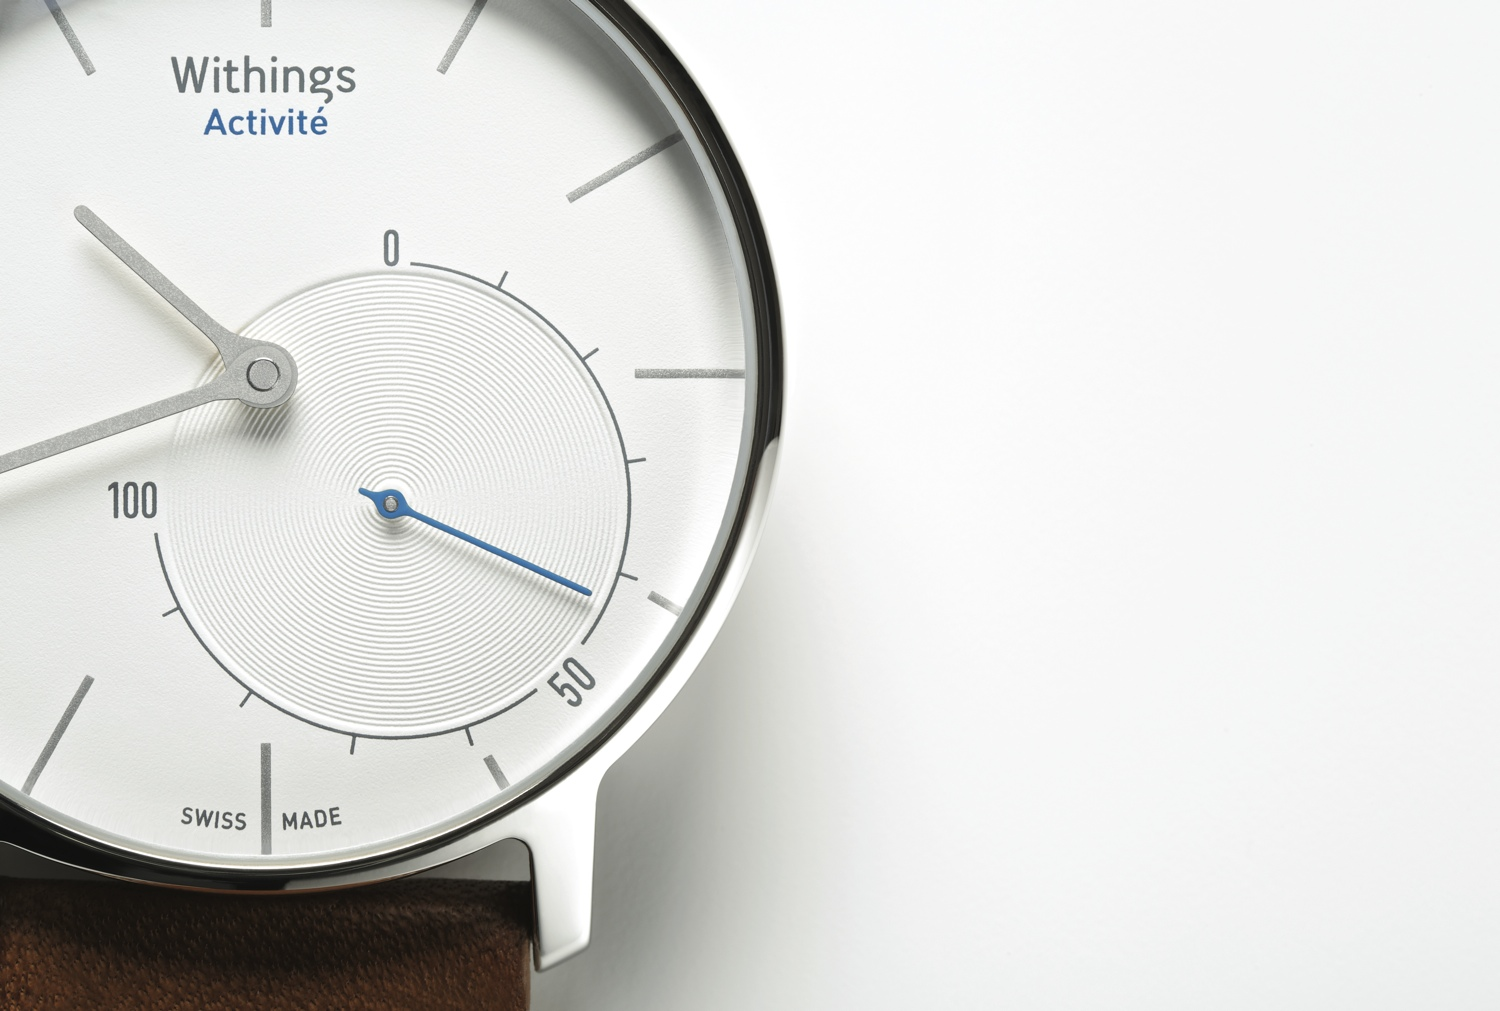 withings-activite-fitness-watch-1